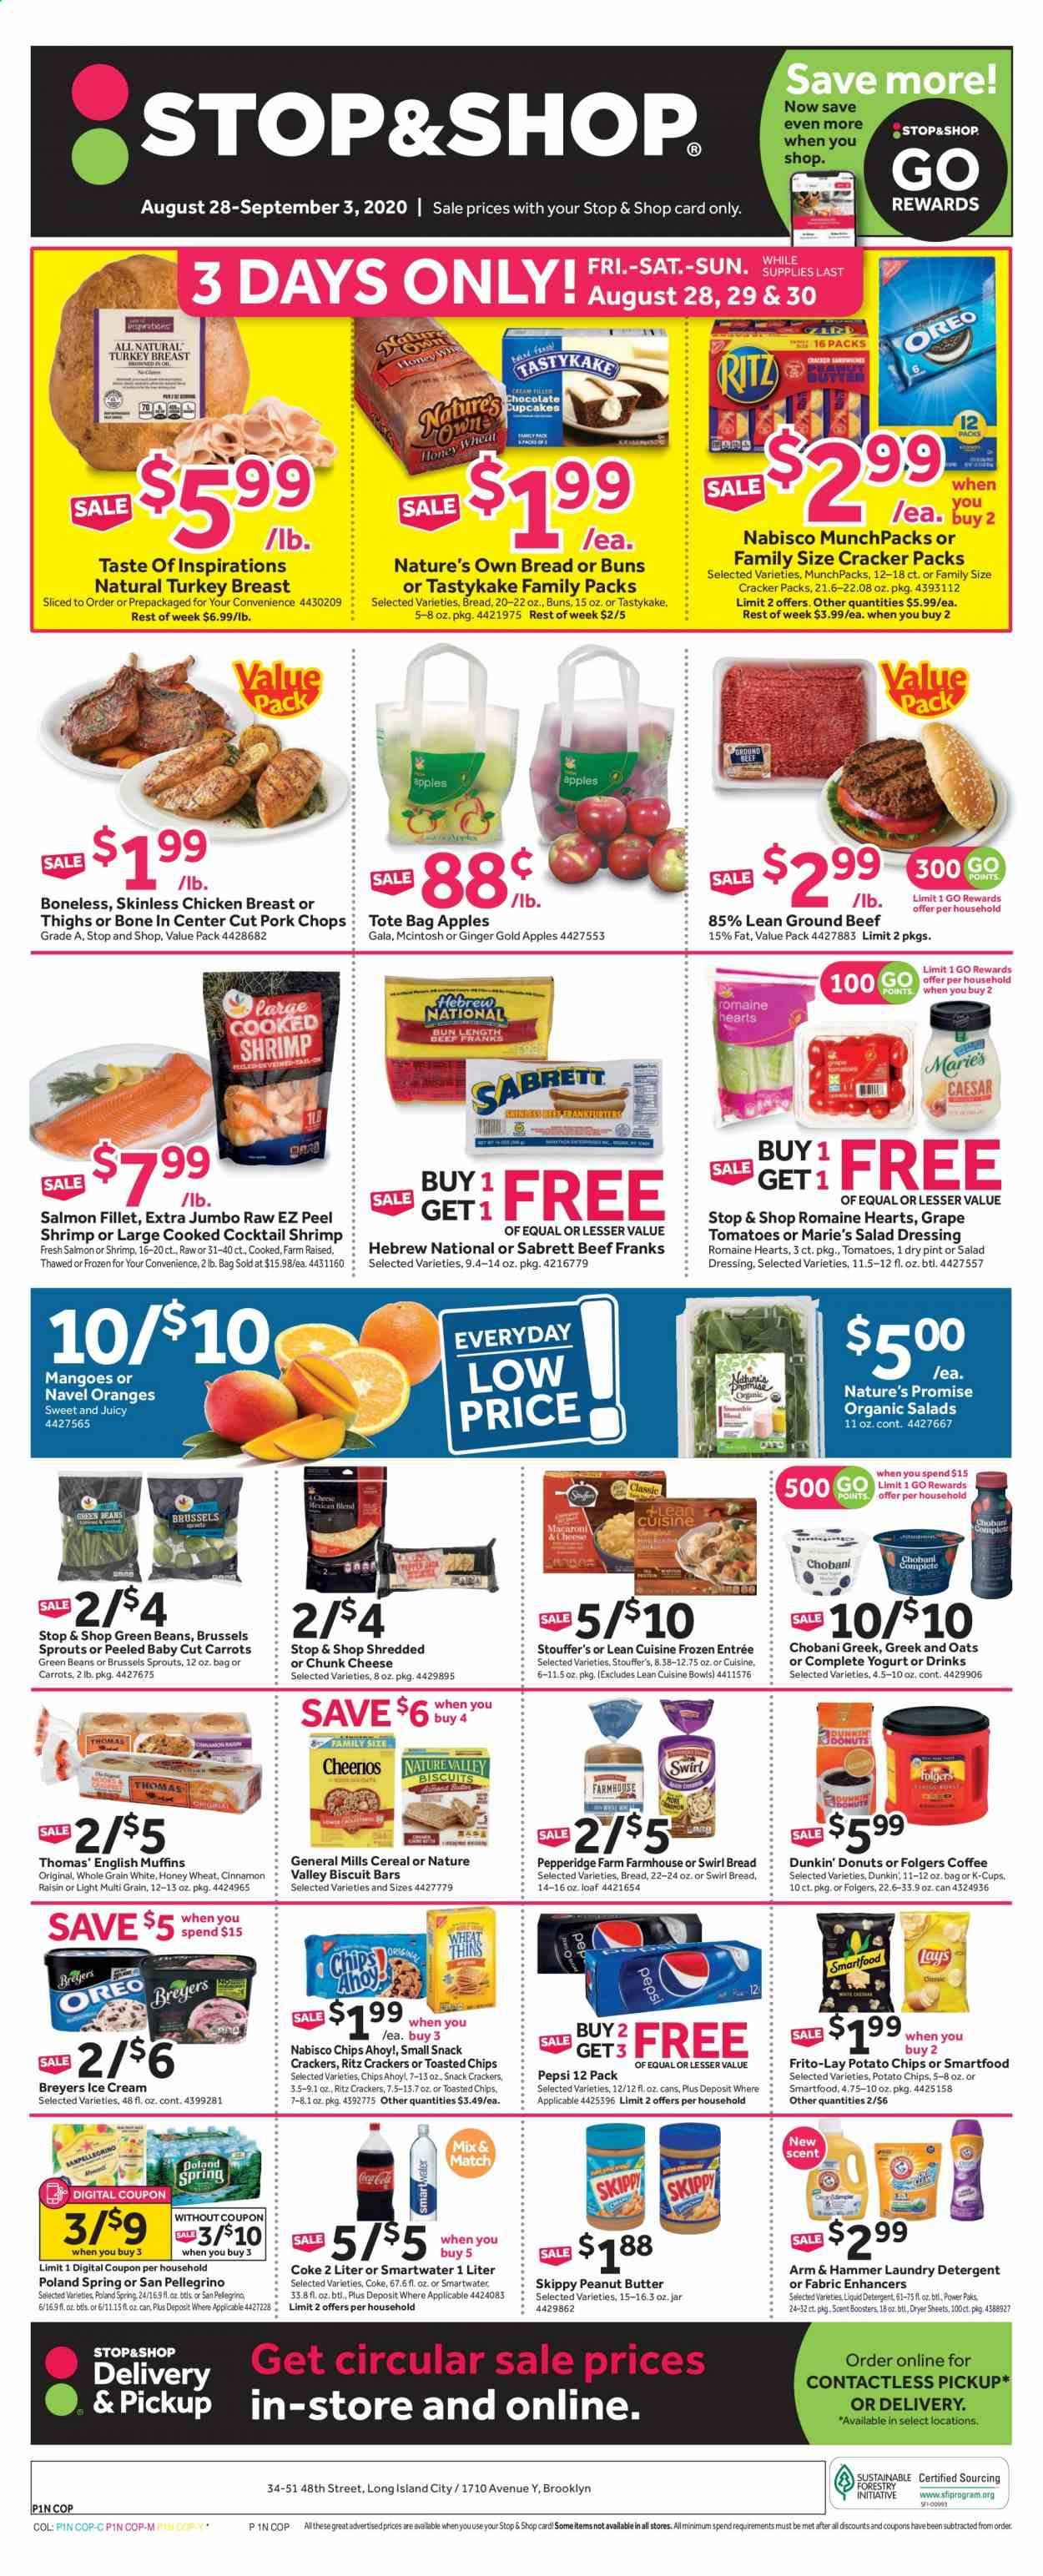 Stop & Shop Flyer - 08.28.2020 - 09.03.2020 - Sales products - apples, ARM & HAMMER, beans, beef meat, bread, brussels sprouts, carrots, cereals, Coca-Cola, detergent, frozen, ginger, grapes, green beans, ground beef, mango, salad dressing, salmon, salmon fillet, tomatoes, turkey, turkey breast, honey, ice cream, jar, pork chops, pork meat, potato chips, chicken, chicken breast, peanut butter, Pepsi, oats, orange, chips, cheese, dressing, snack, hammer, tote, salad, cracker, liquid detergent, laundry detergent, Folgers, Apple, shrimps, donut, spring. Page 1.